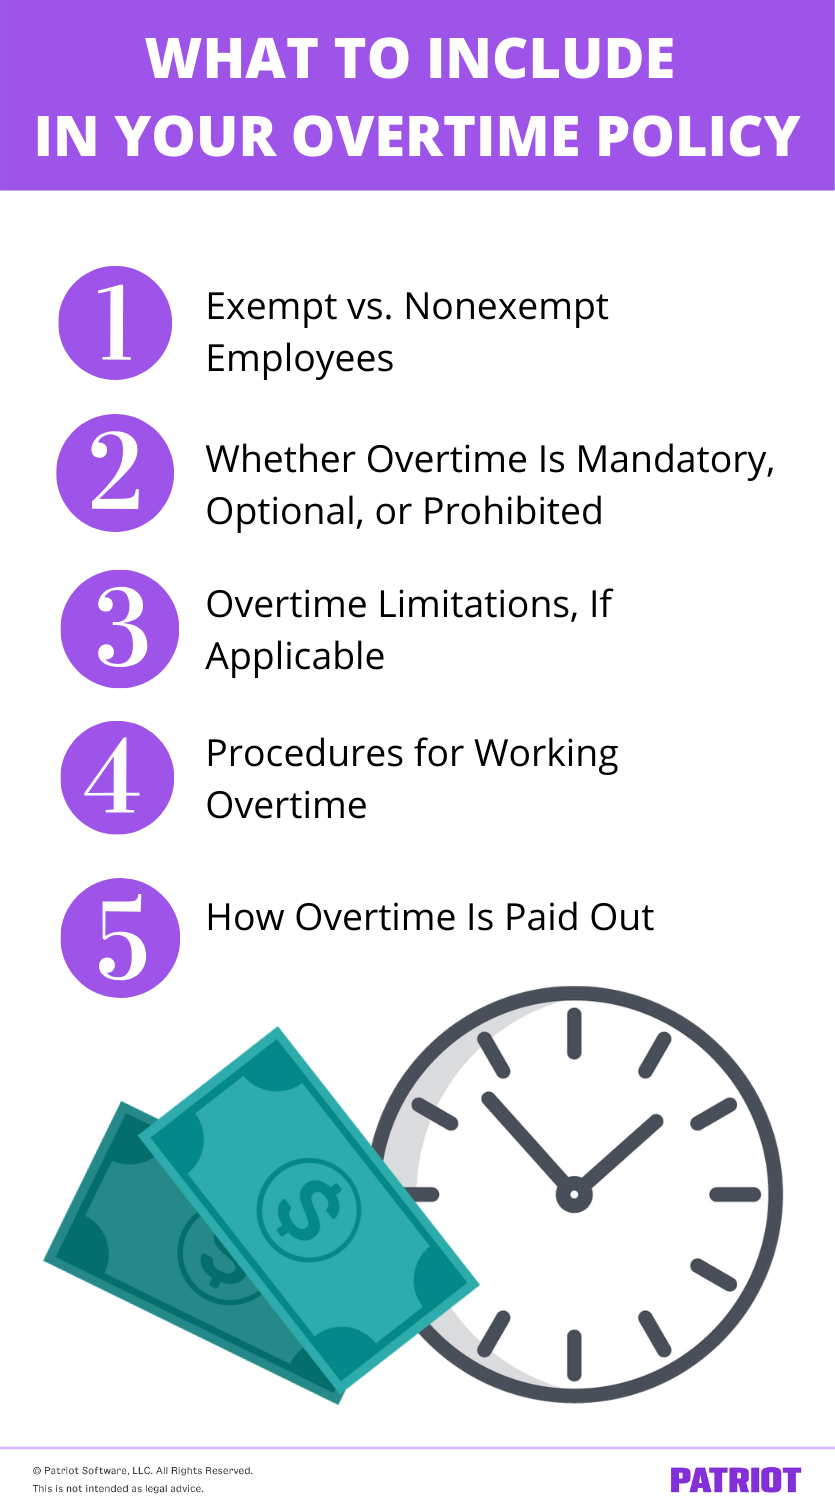 list of 5 things to include in an overtime policy